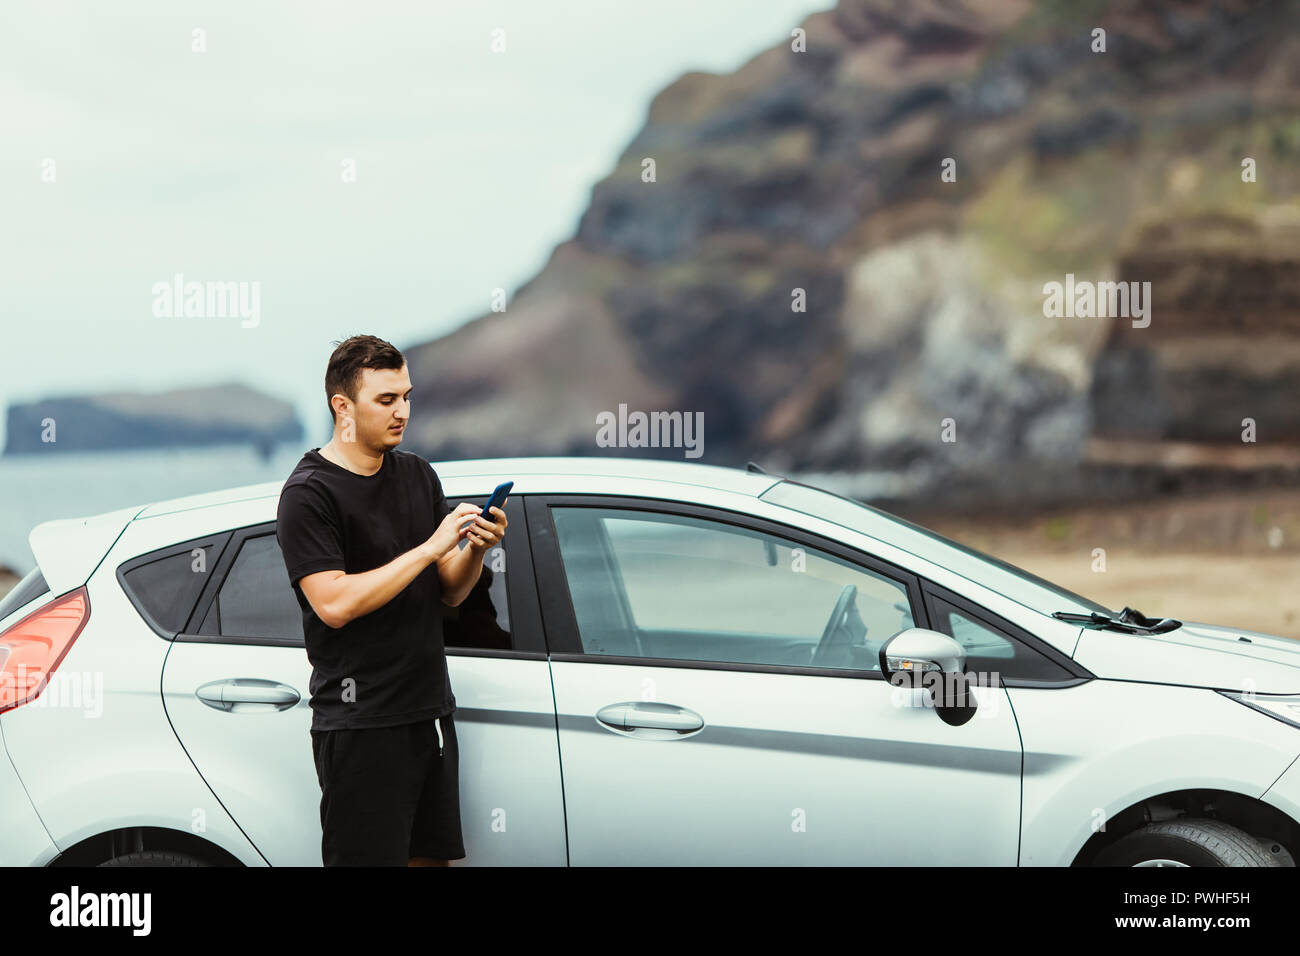 Rental Car Check High Resolution Stock Photography And Images Alamy